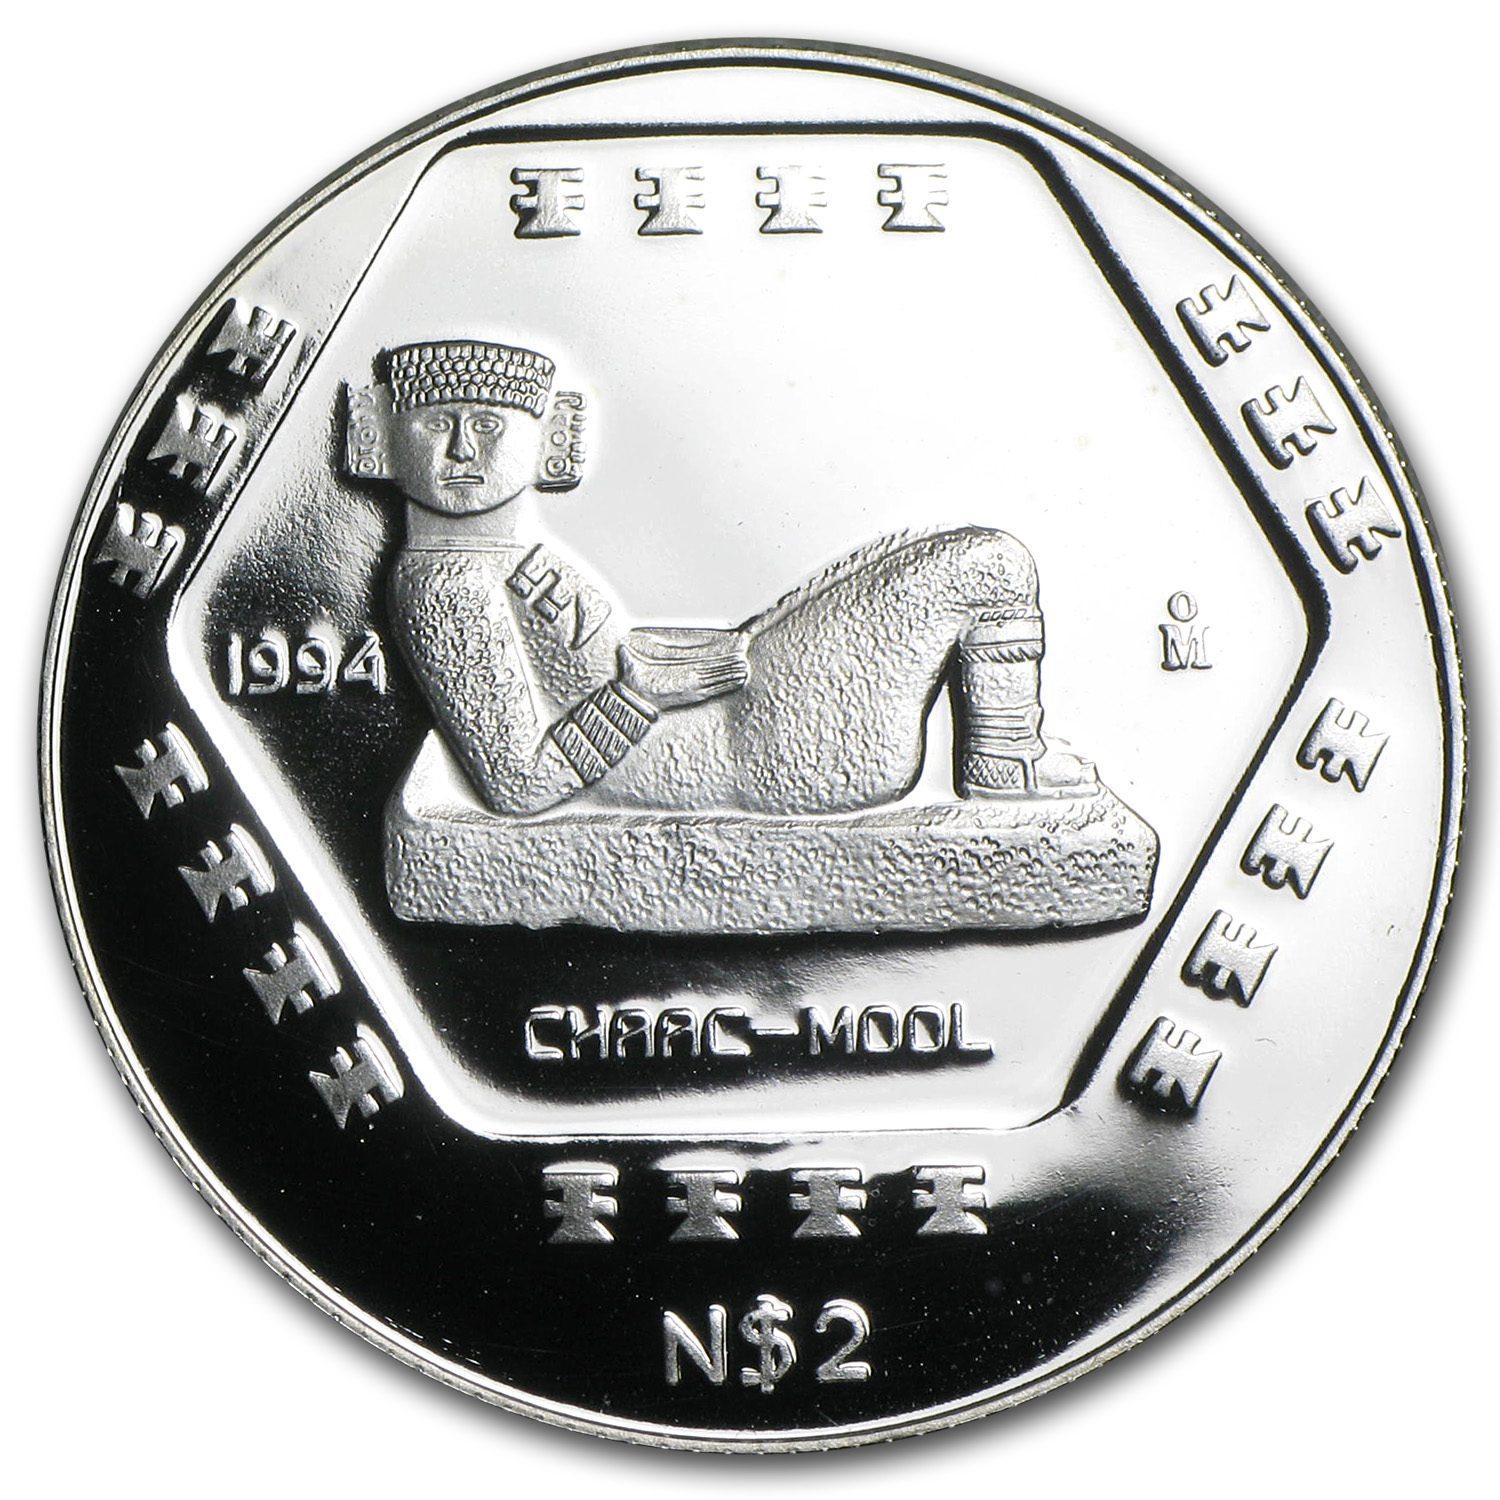 1994 1/2 oz Mexican Silver 2 Pesos Chaac-Mool (Proof)